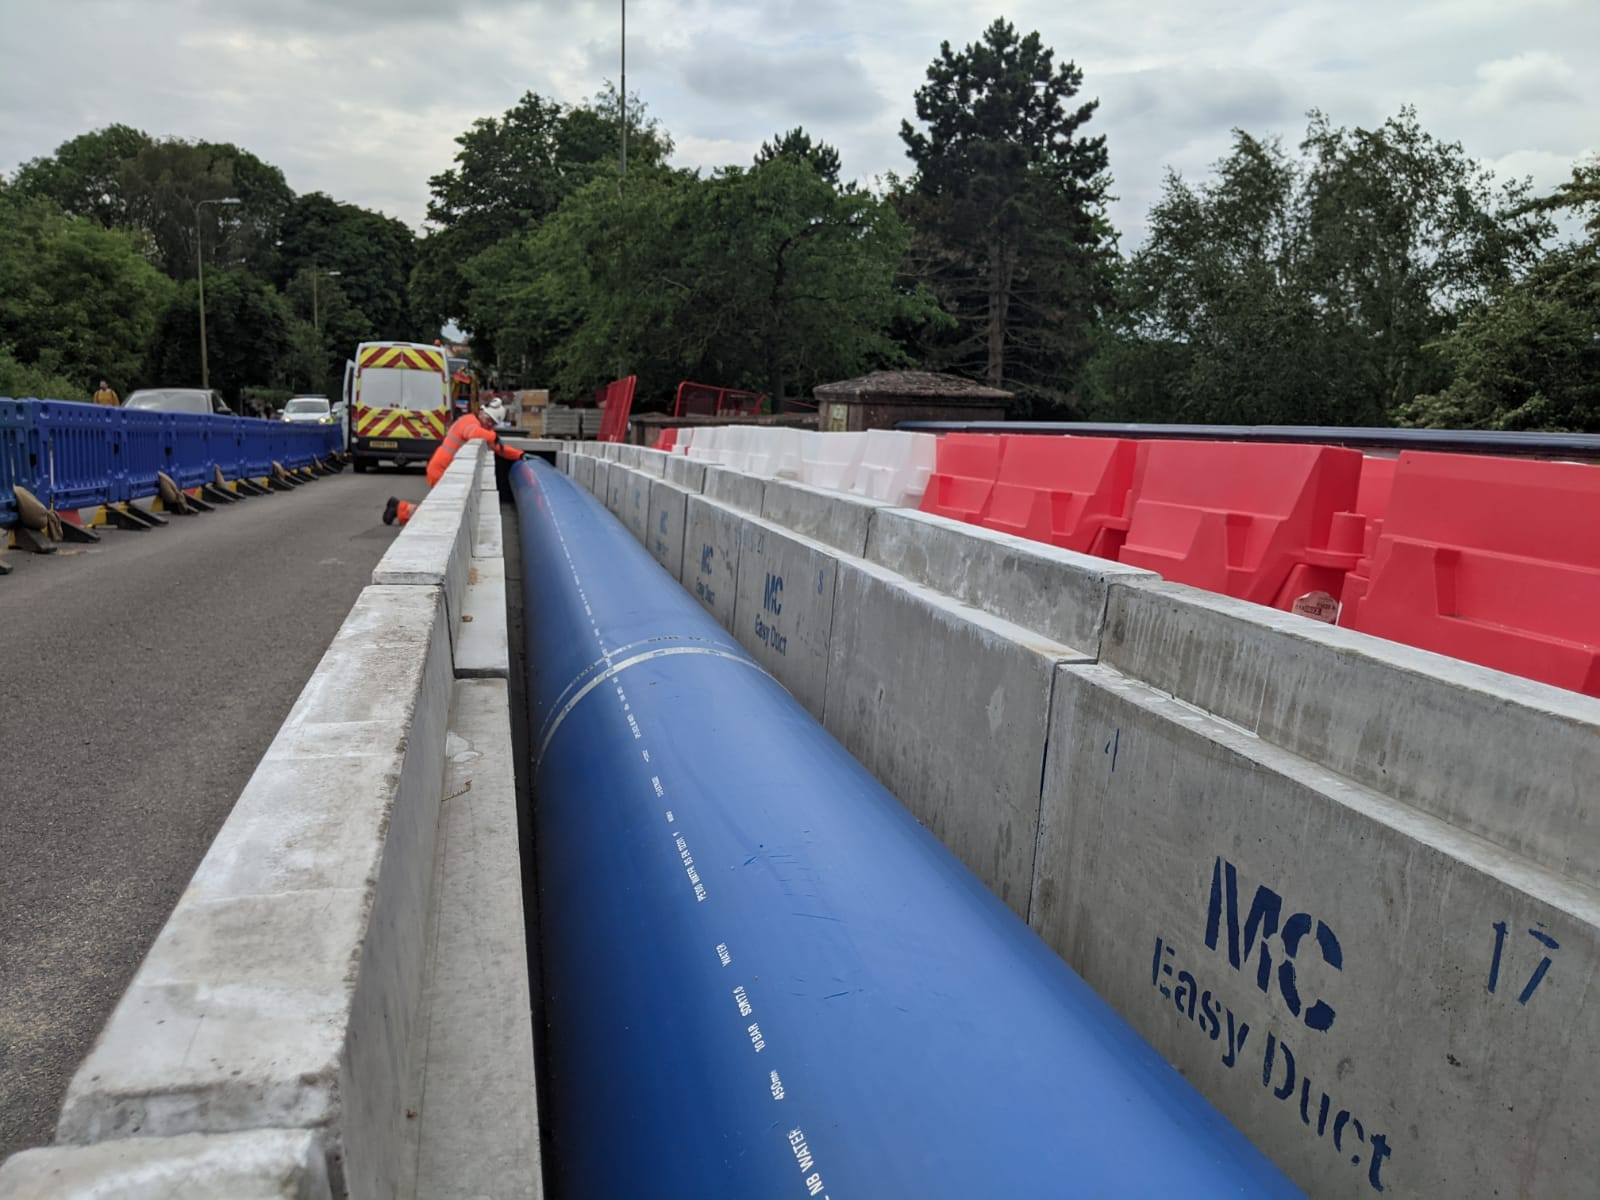 This image shows the new pipe which will bypass the damaged section